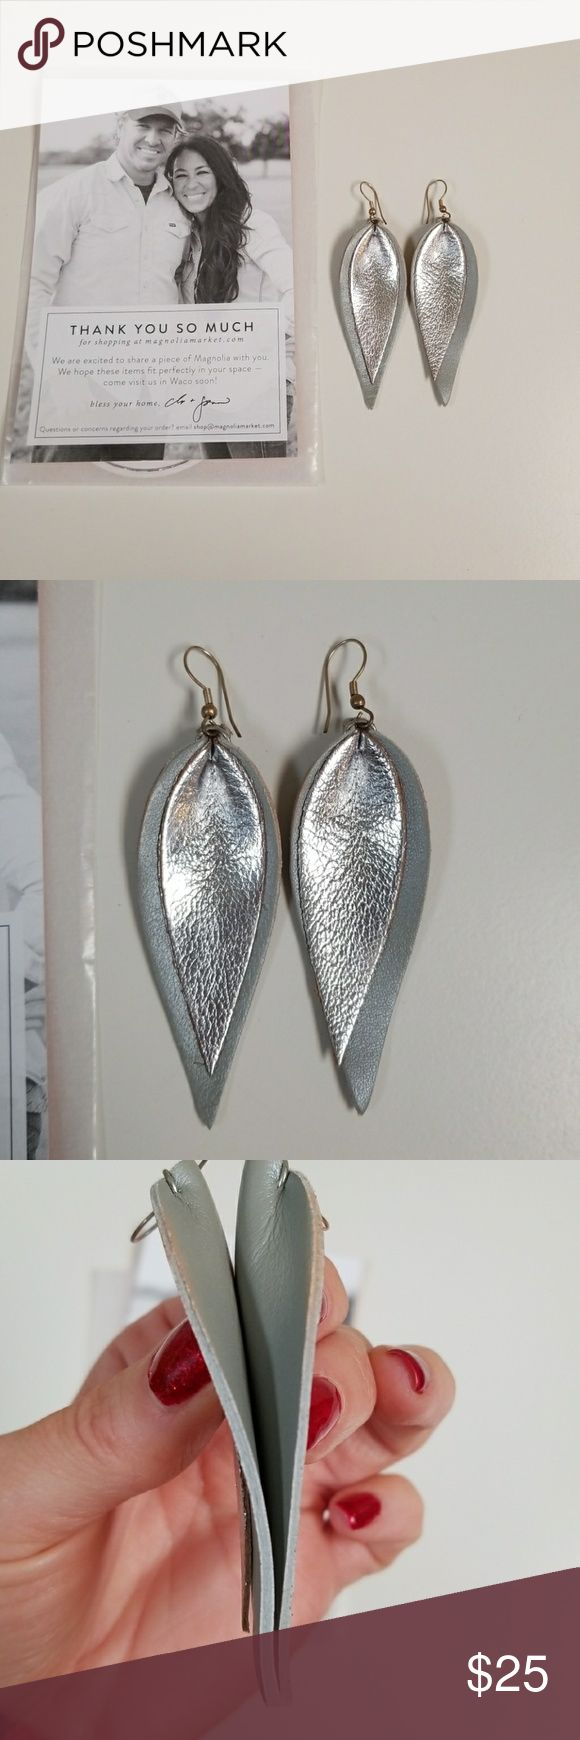 Raven and Lilly Joanna Gaines leather earrings Purchased from Joanna Gaines Magnolia Market. Silver and grey leather. Worn a few times. Has some make up on sides (see photos). Price is firm on these  unless you are bundling with other items. Raven + Lily Jewelry Earrings